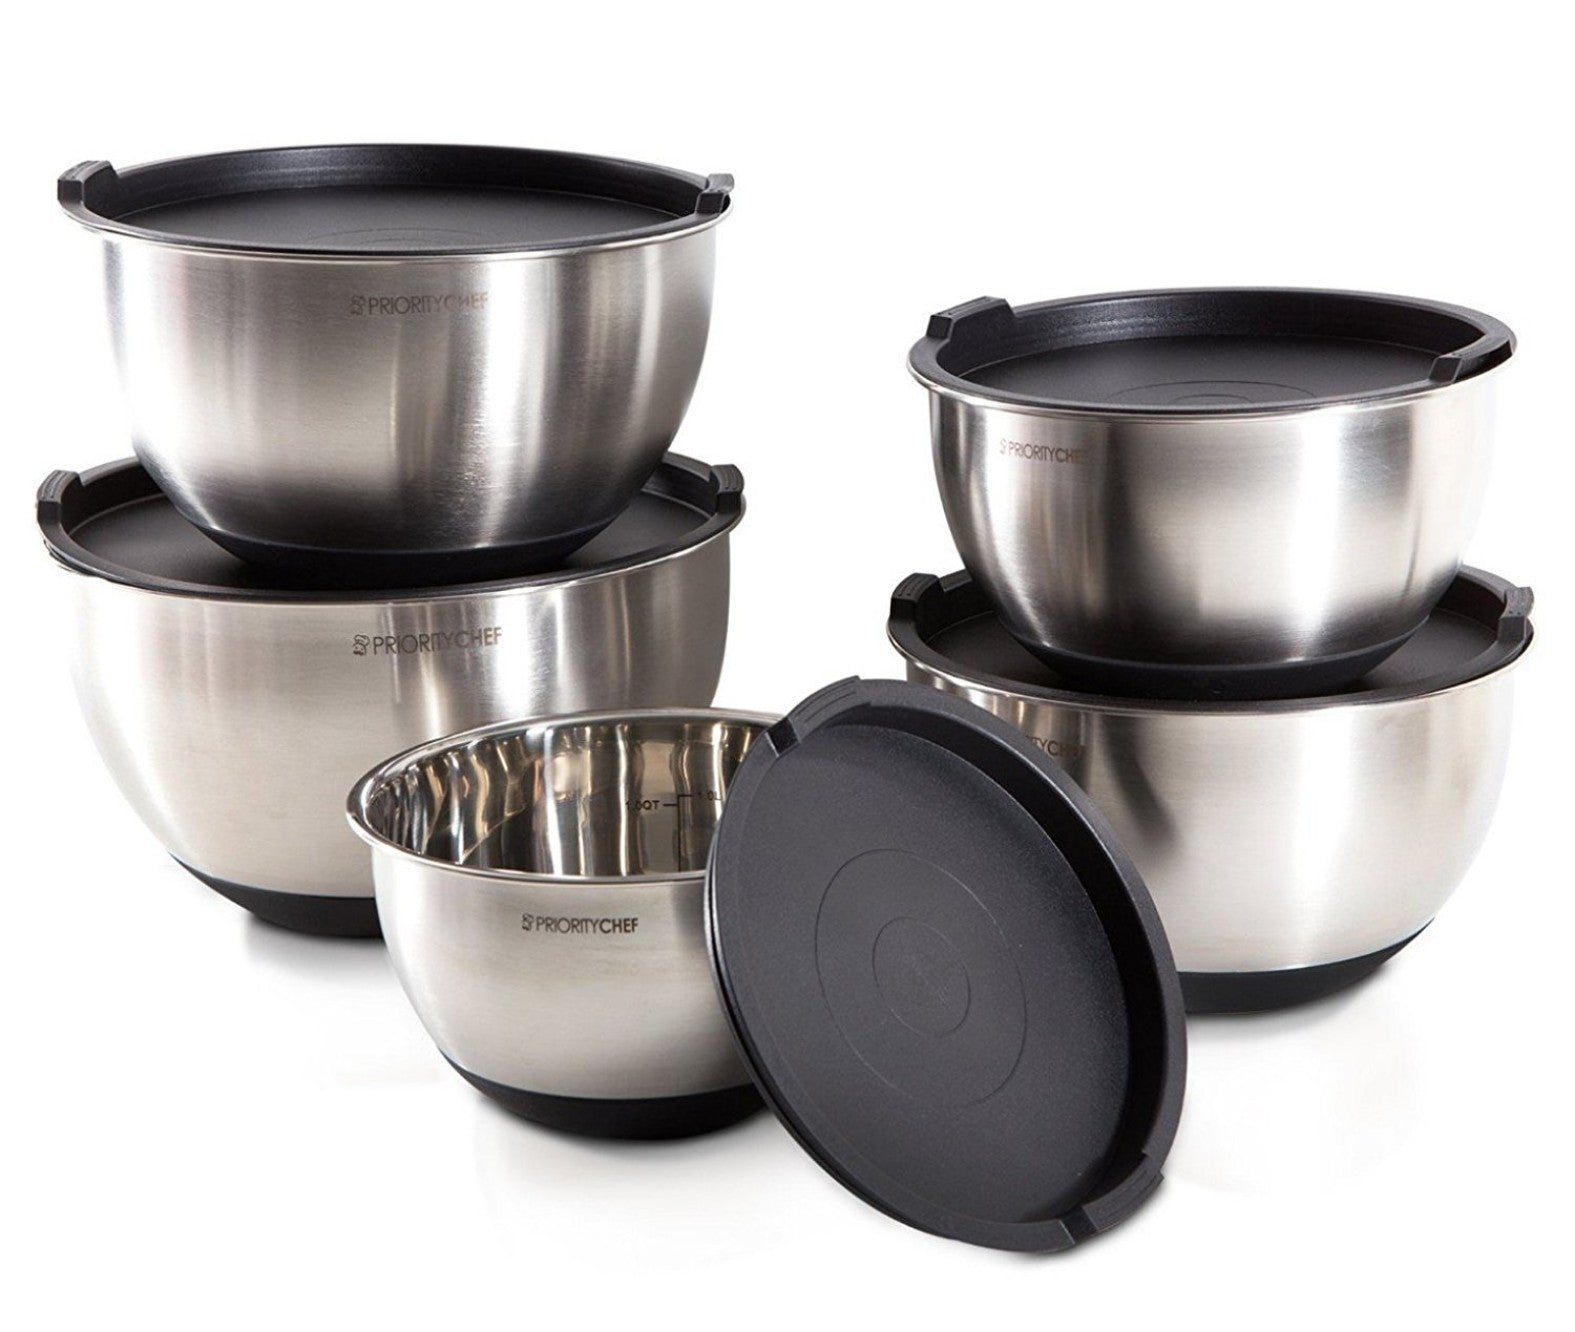 5 Pc Stainless Steel Mixing Bowl Set With Lids, Large 5 ...